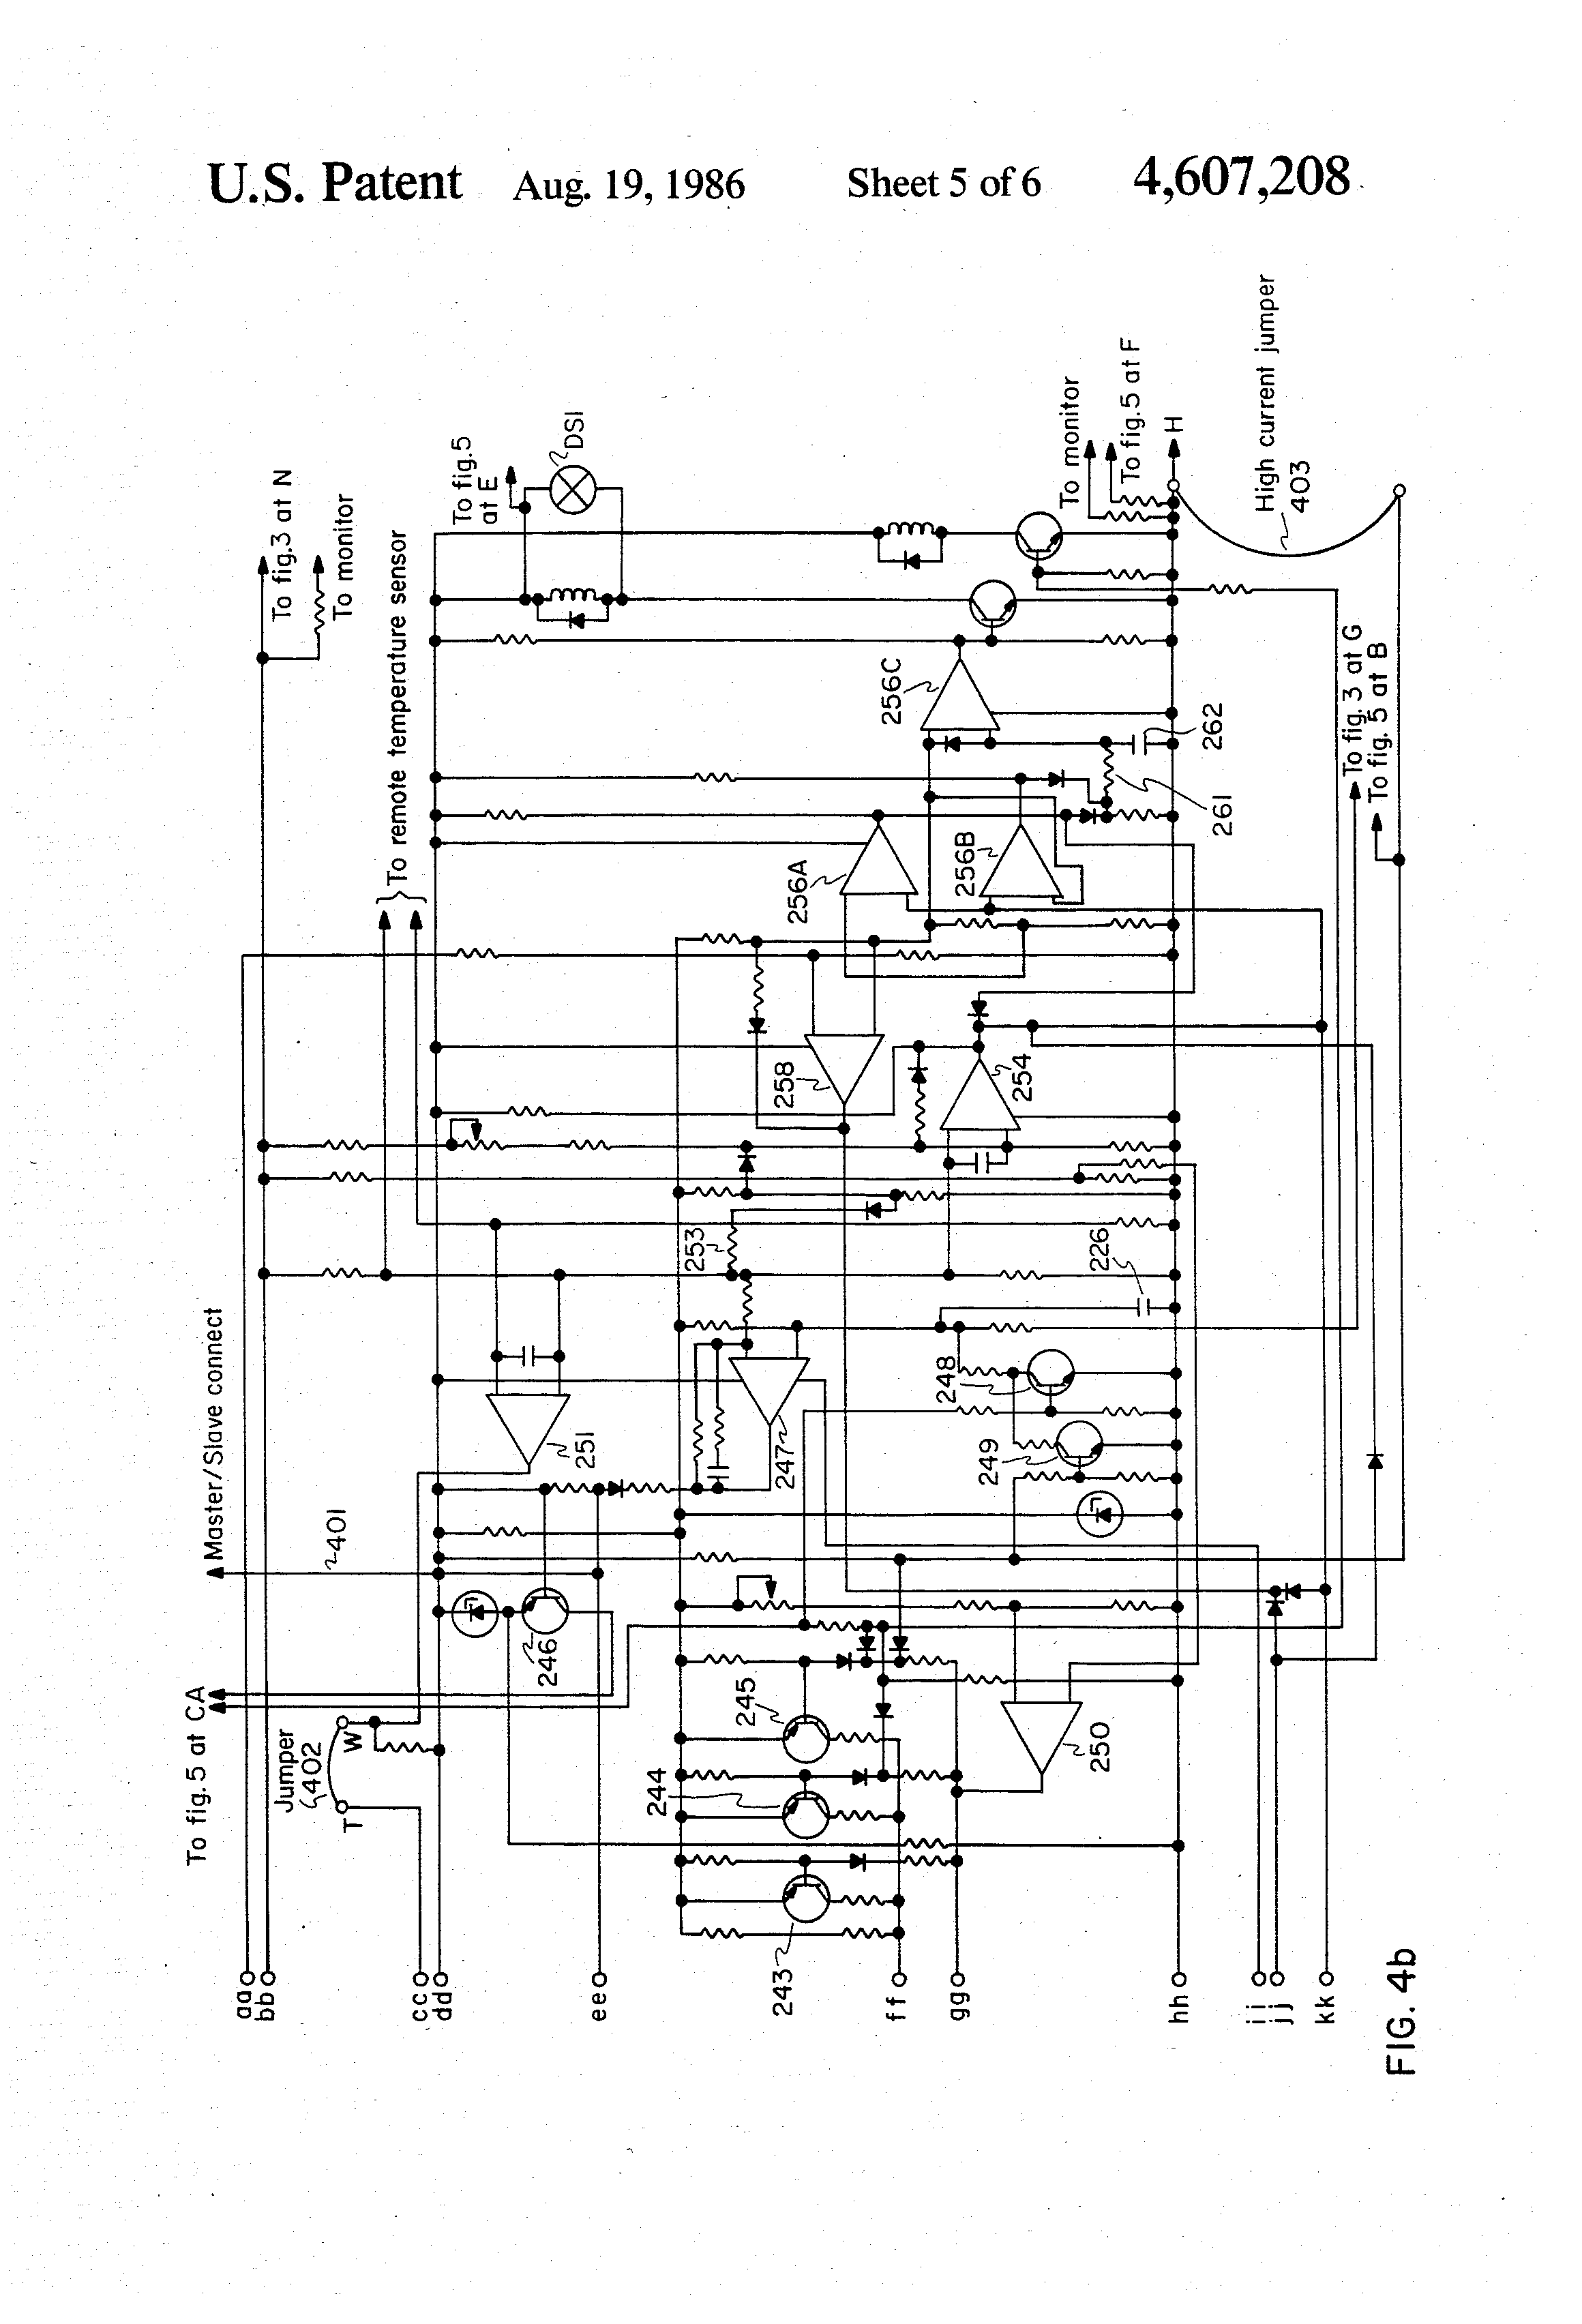 85 1010 battery charger wiring diagram on wiring diagram for schumacher battery charger circuit and 36 Volts Battery Charger Circuit Diagram Schumacher Battery Charger Wiring Diagram